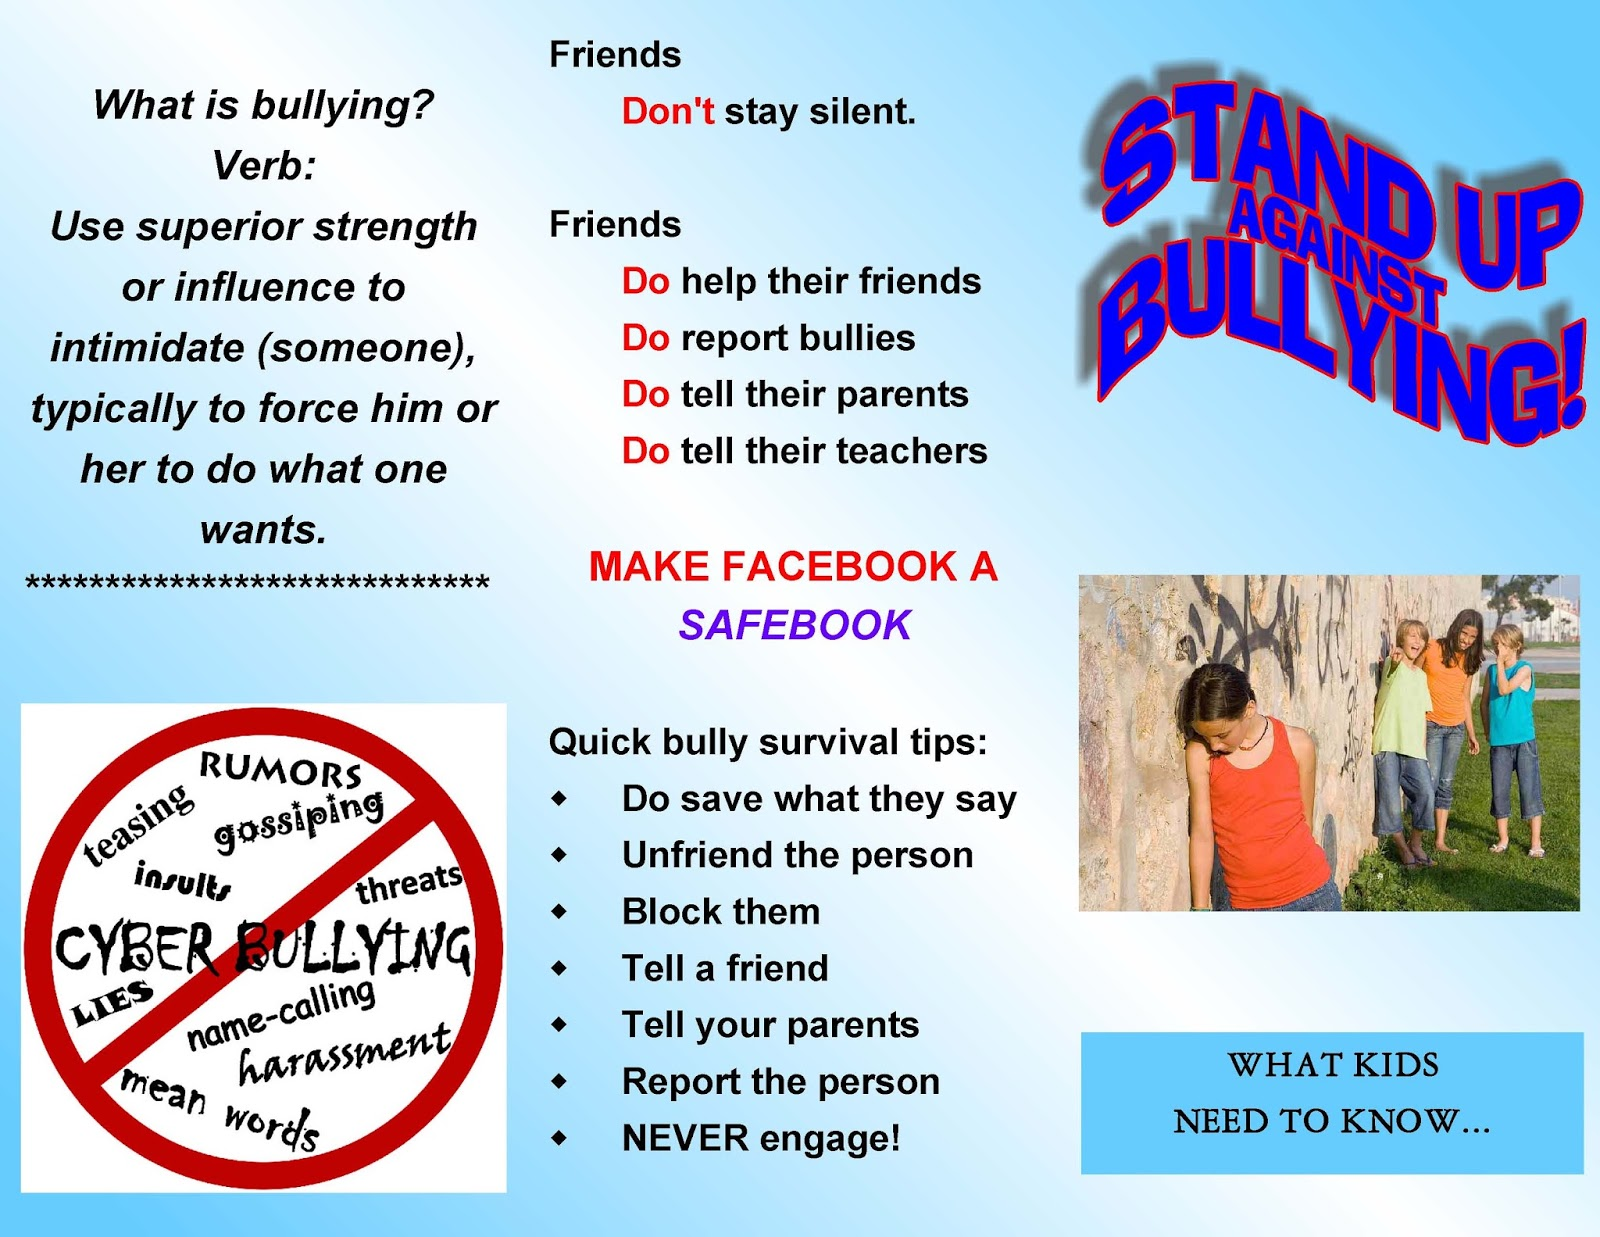 Stand up against bullying brochures brochures altavistaventures Image collections